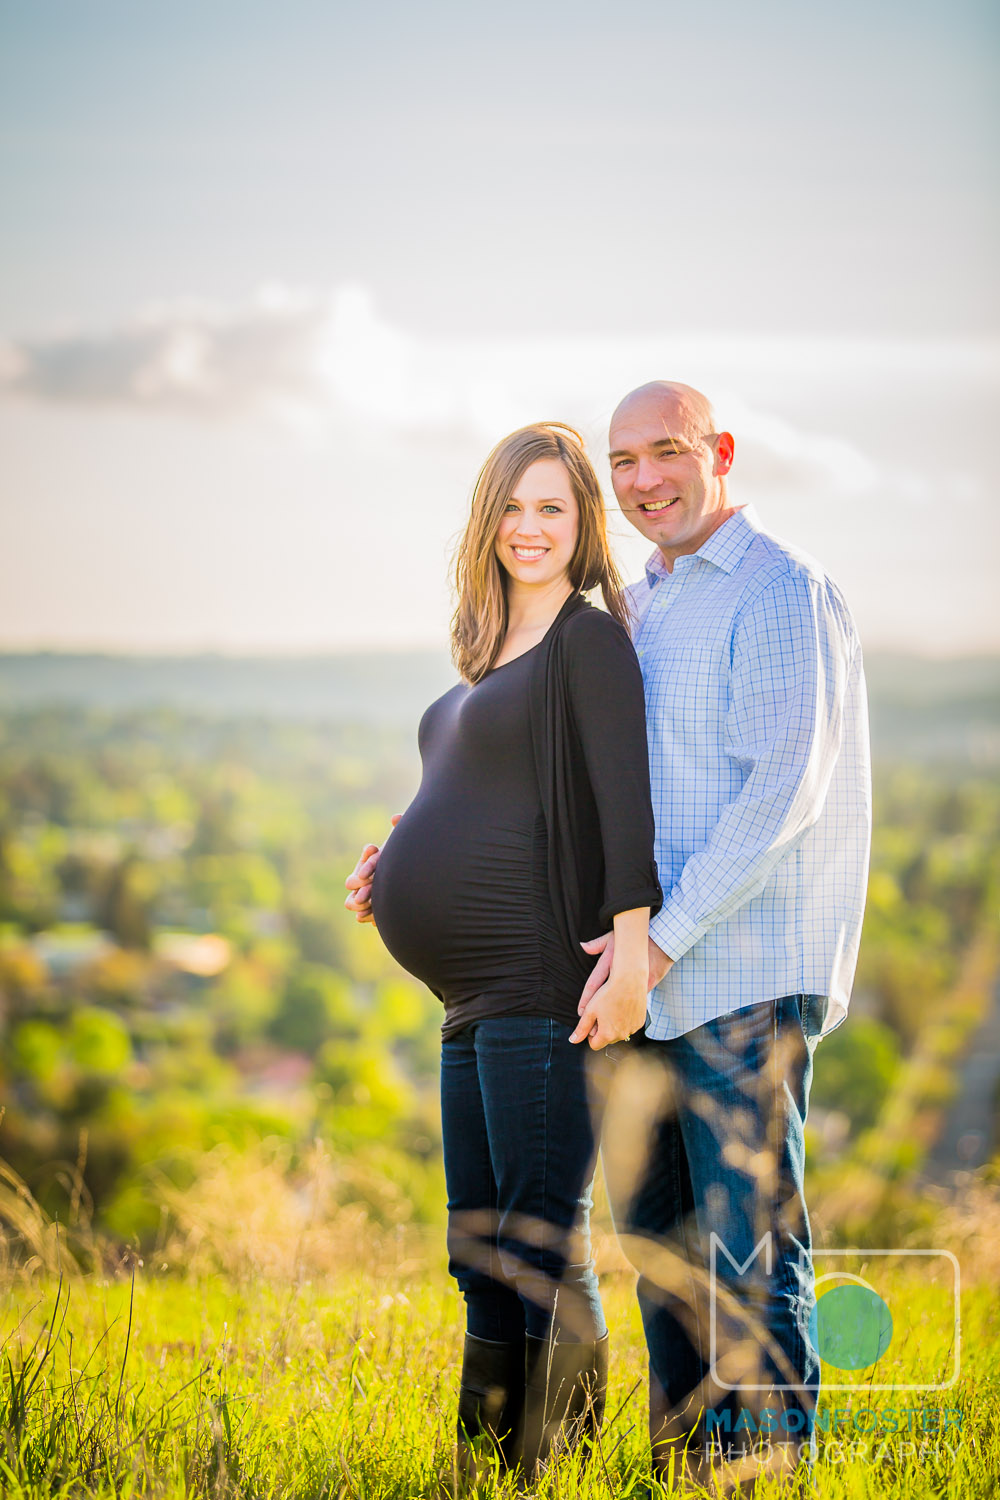 walnut creek maternity photography at lime ridge